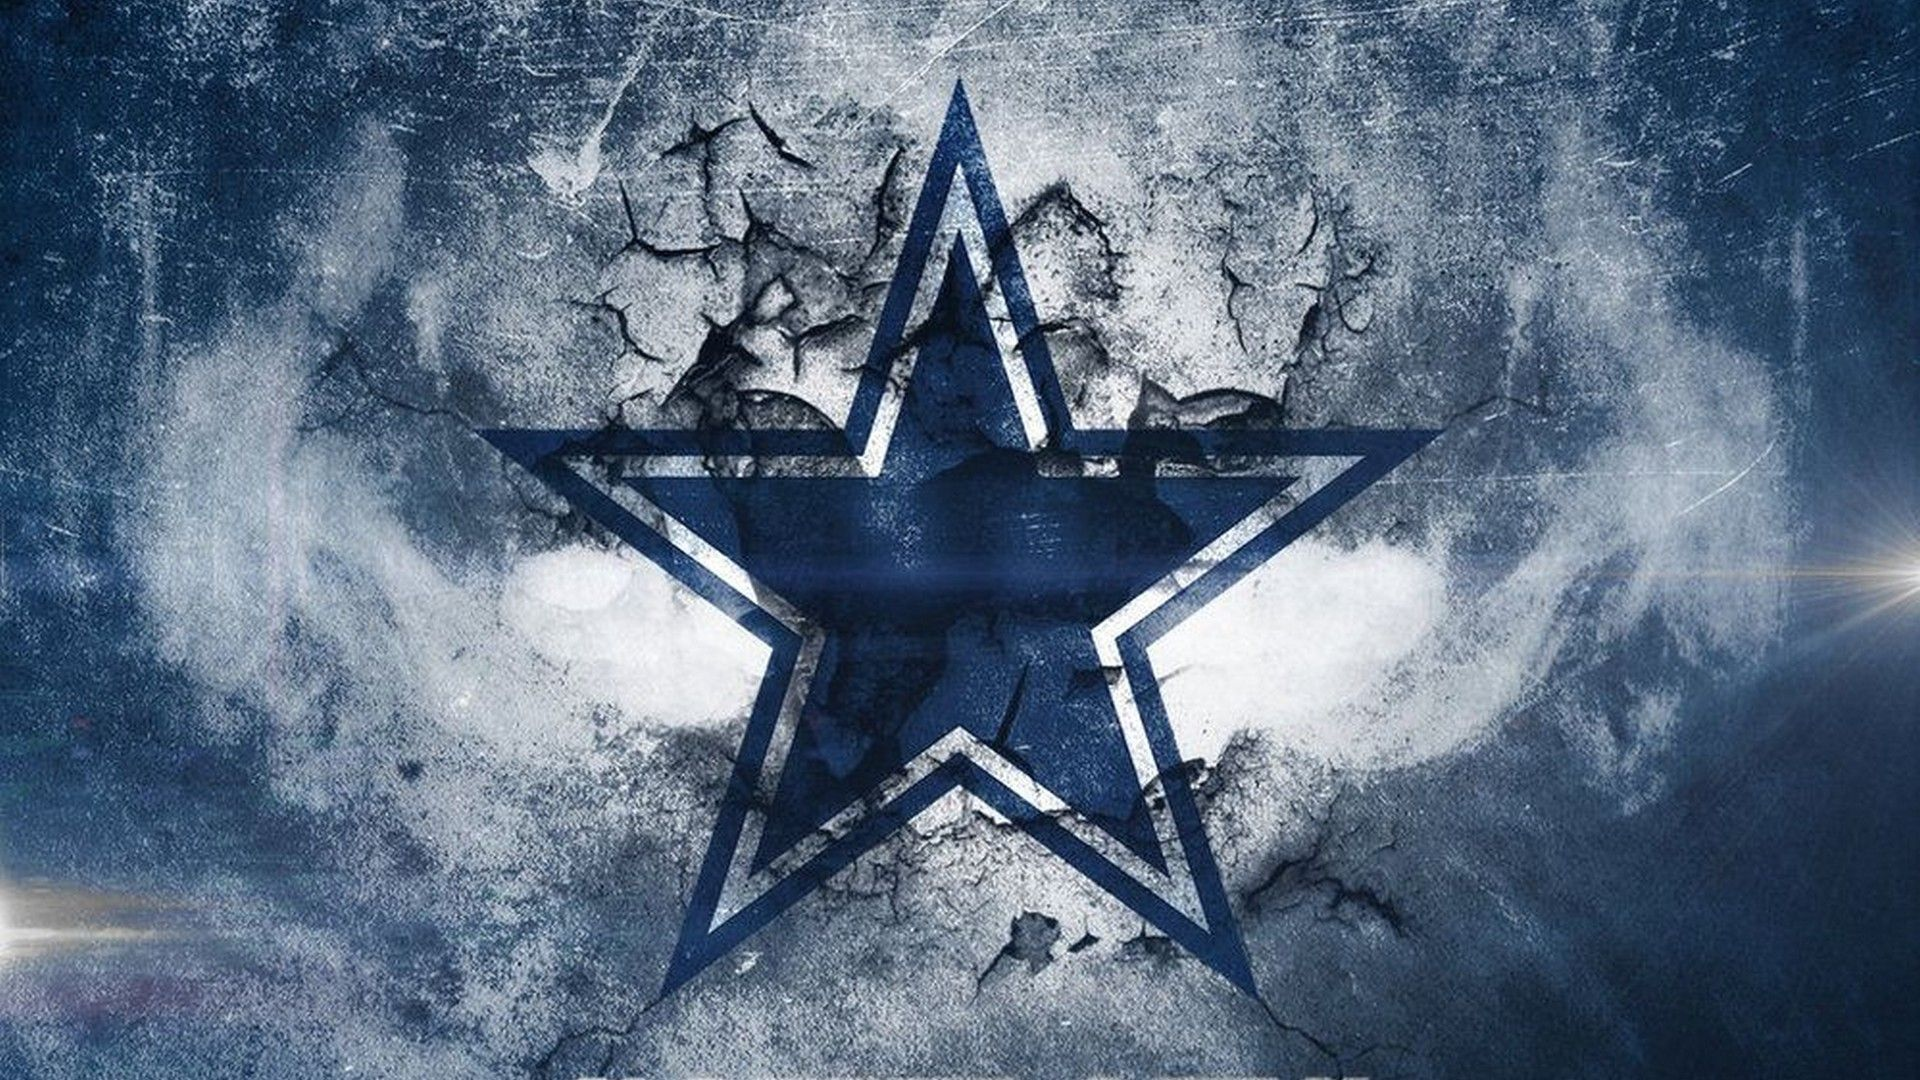 Hd Backgrounds Dallas Cowboys Dallas Cowboys Wallpaper Dallas